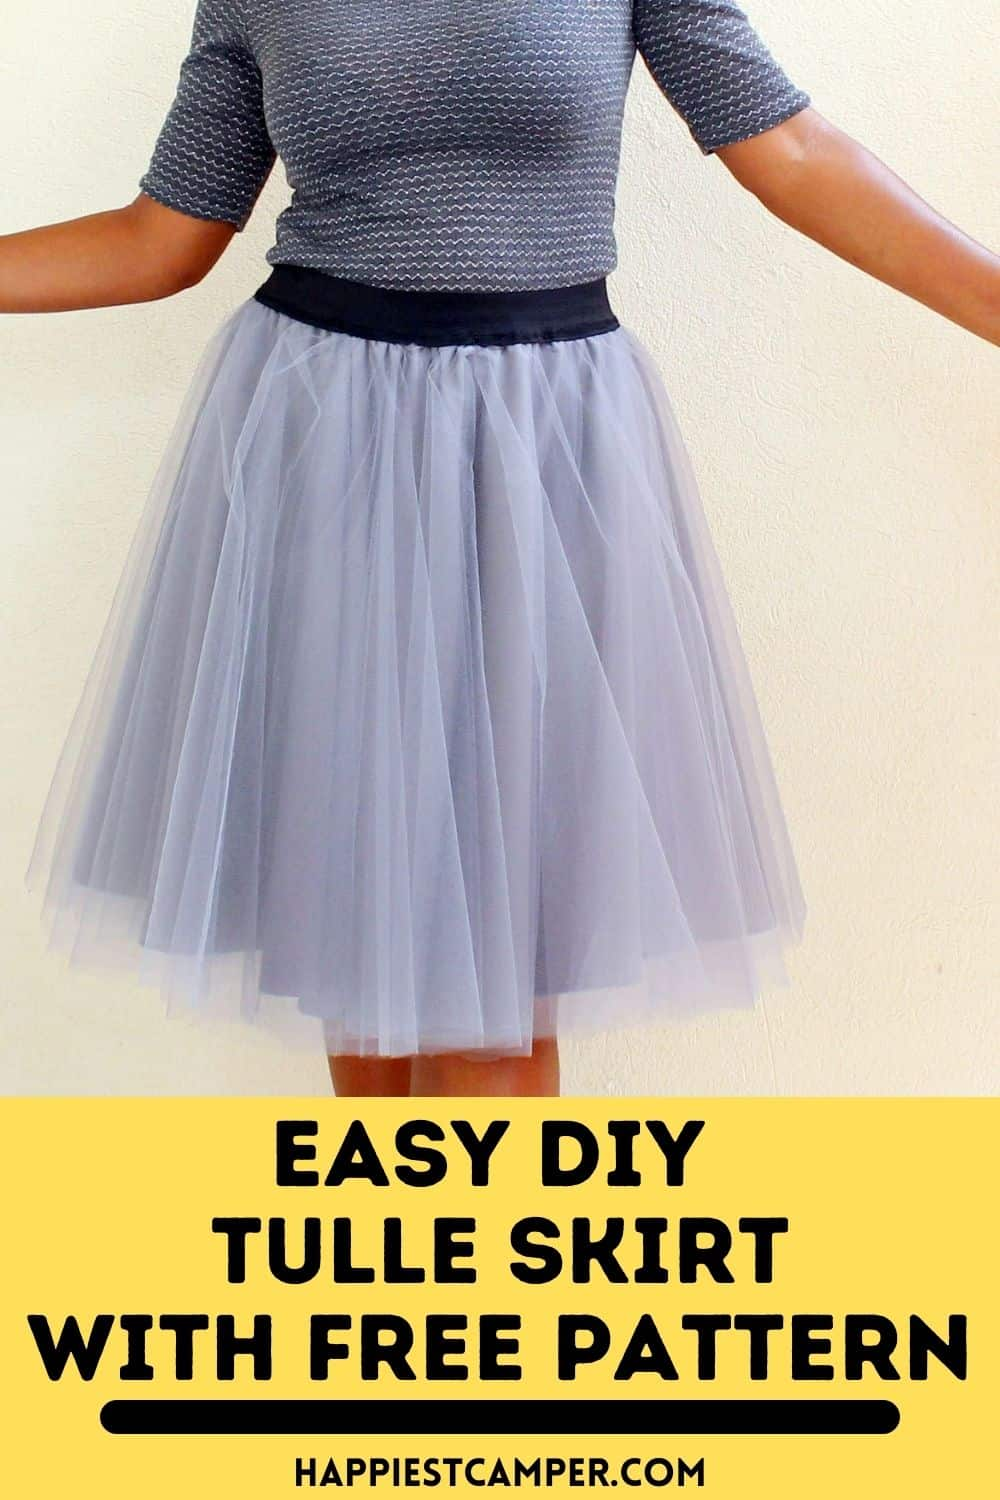 Easy DIY Tulle Skirt With Free Pattern